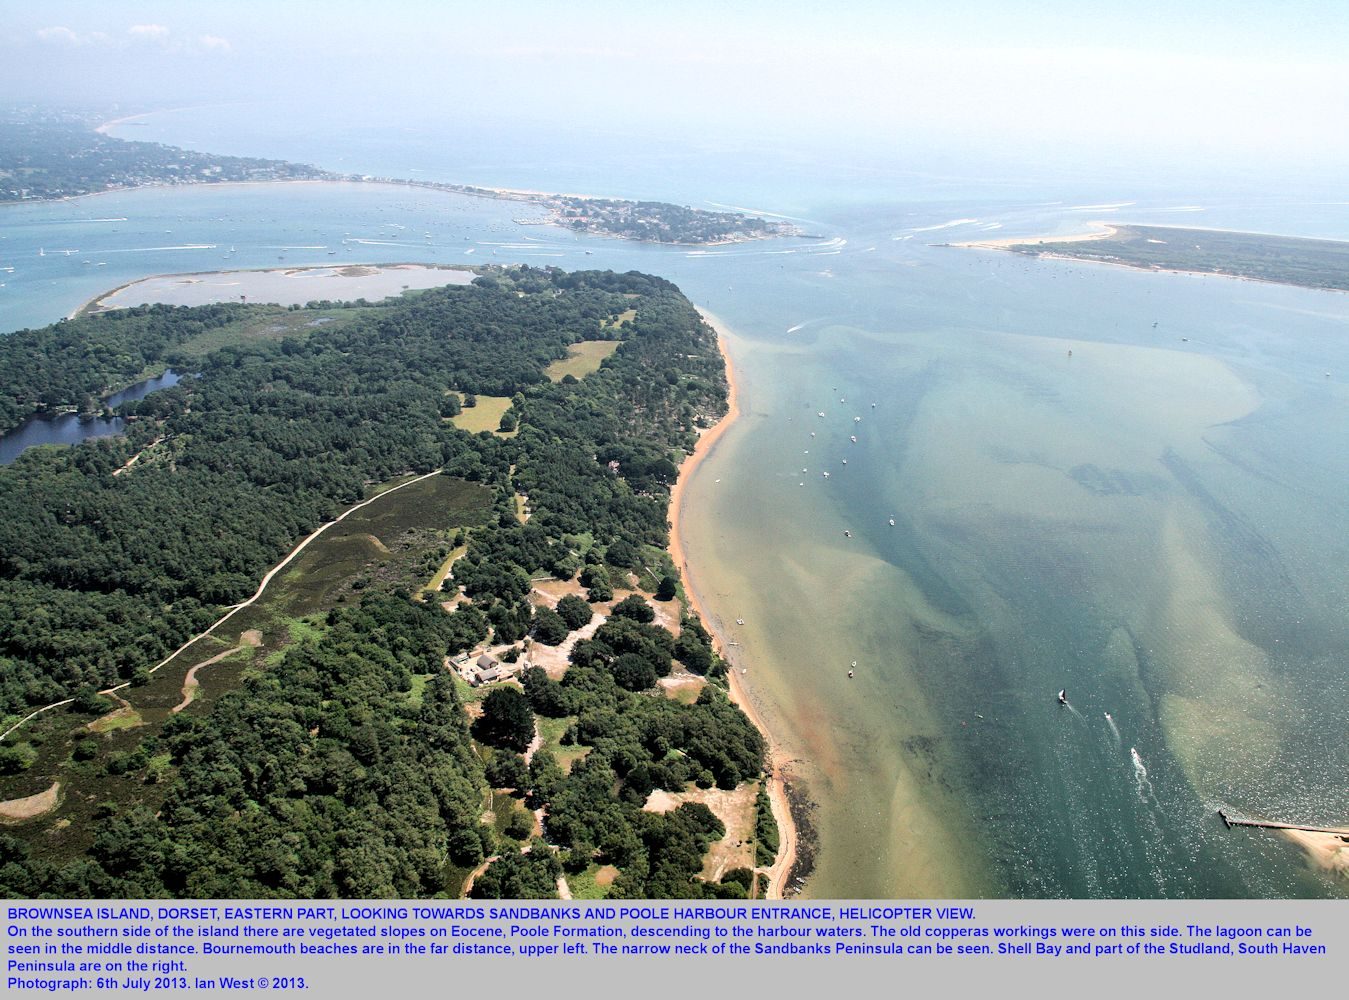 The eastern part of Brownsea Island, Poole Harbour, Dorset, UK, seen from a helicopter, 6th July 2013